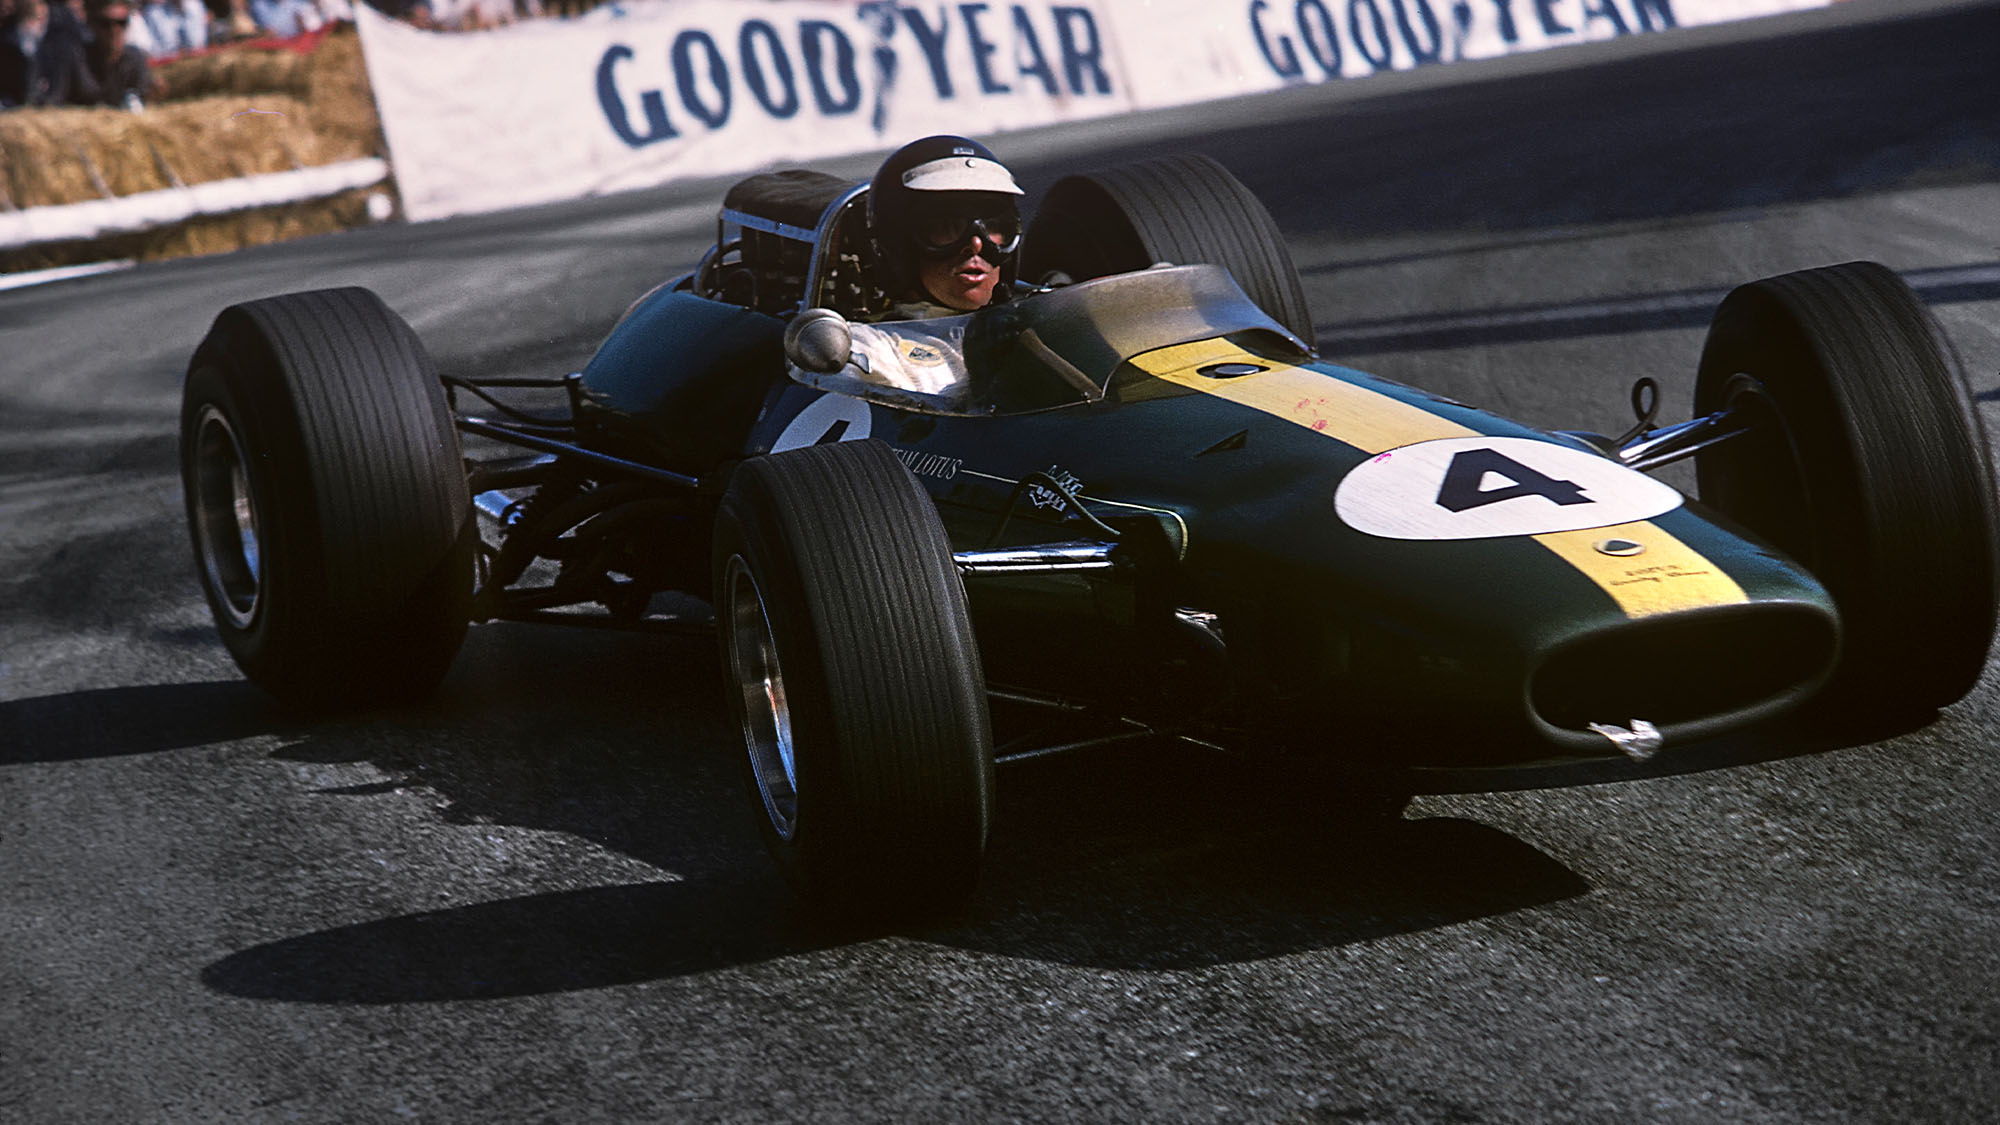 Jim Clark, Lotus 33 Coventry Climax, Grand Prix of Monaco, Monaco, 22 May 1966. (Photo by Bernard Cahier/Getty Images)